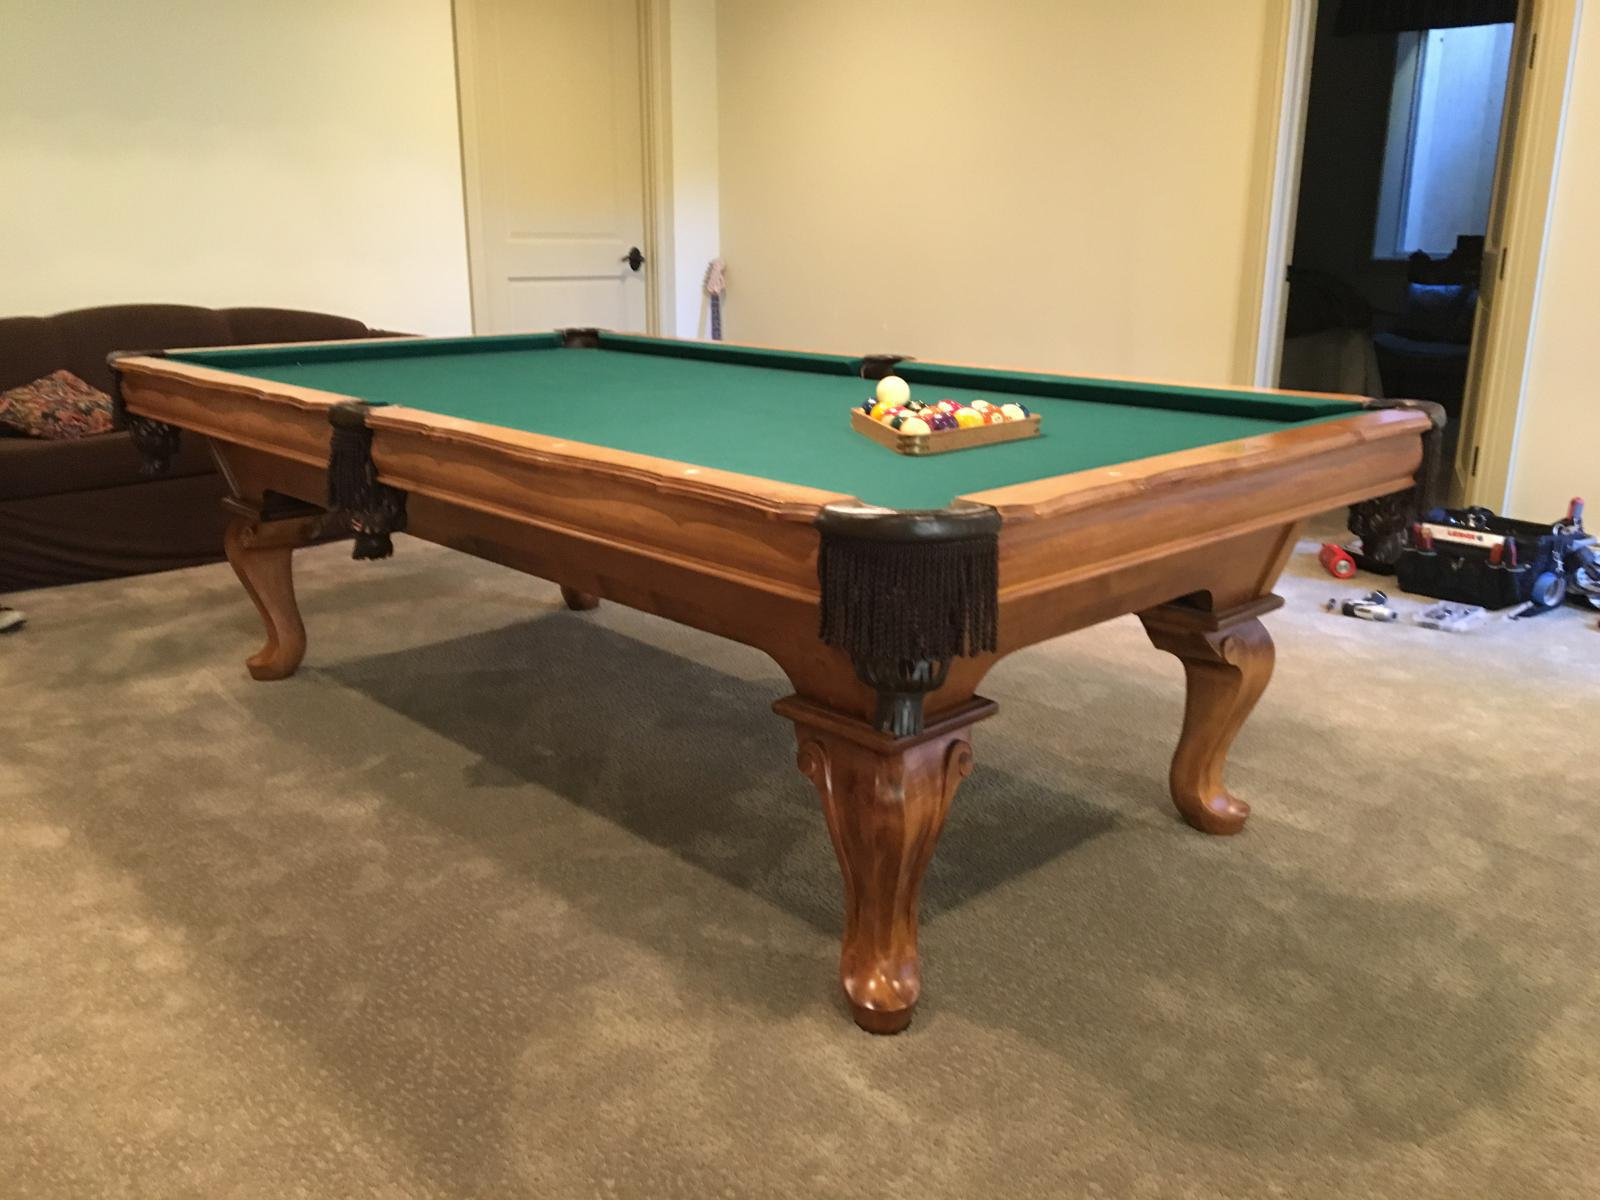 Pro Oversized Gandy MADE IN USA - Gandy pool table